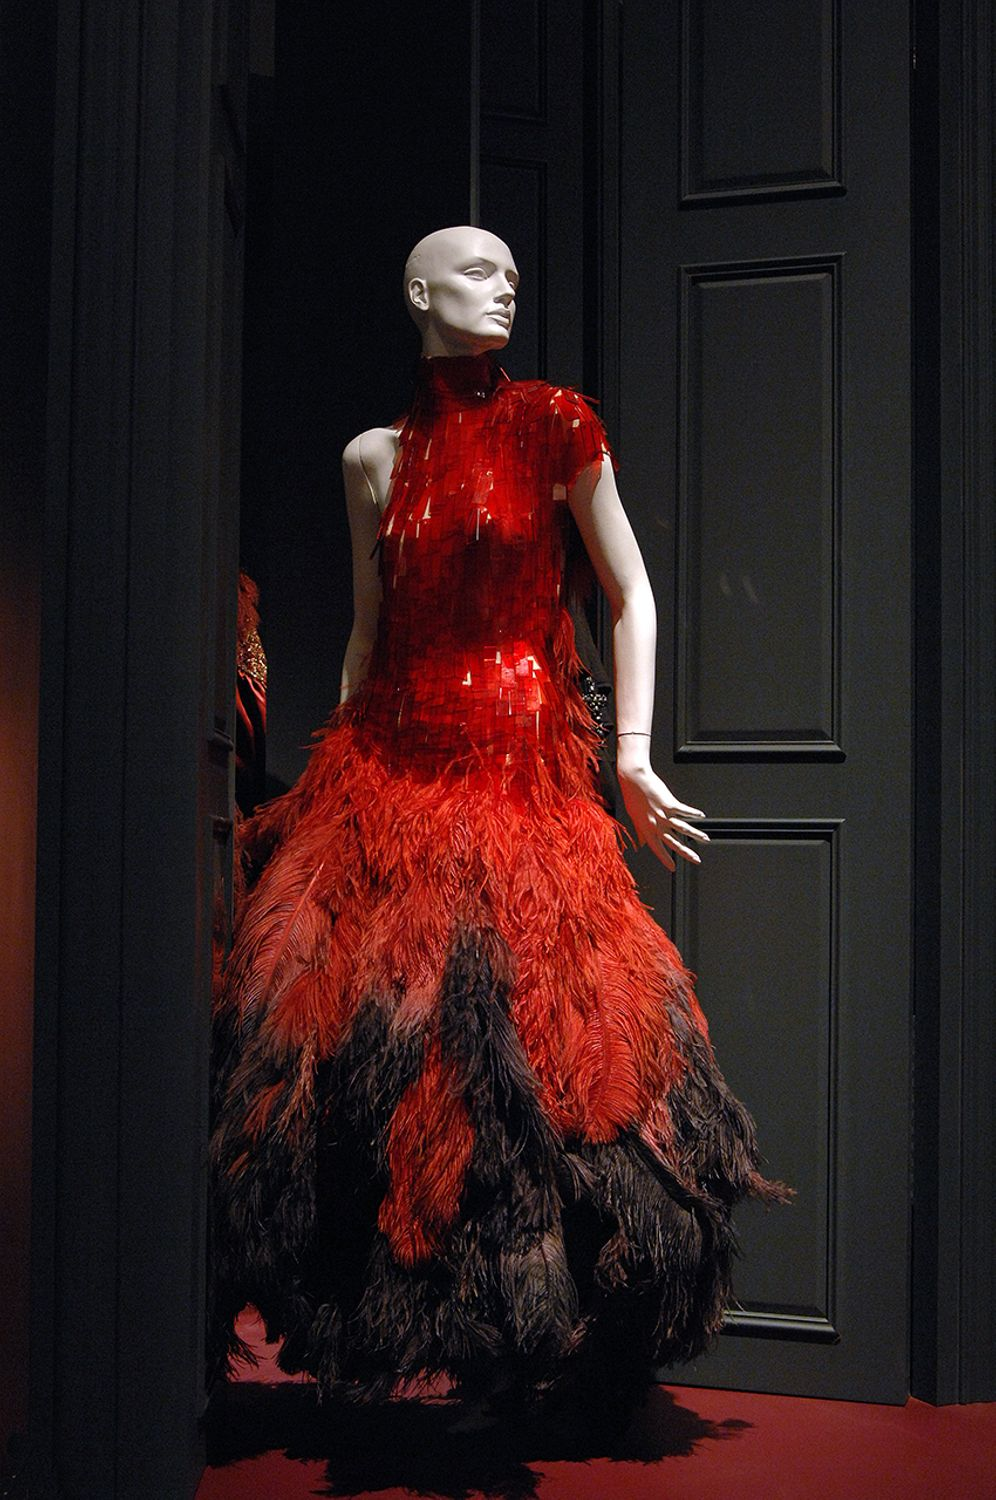 Alexander McQueen dark red glamour dress with a fitted red bodice and a black and red feathered skirt.